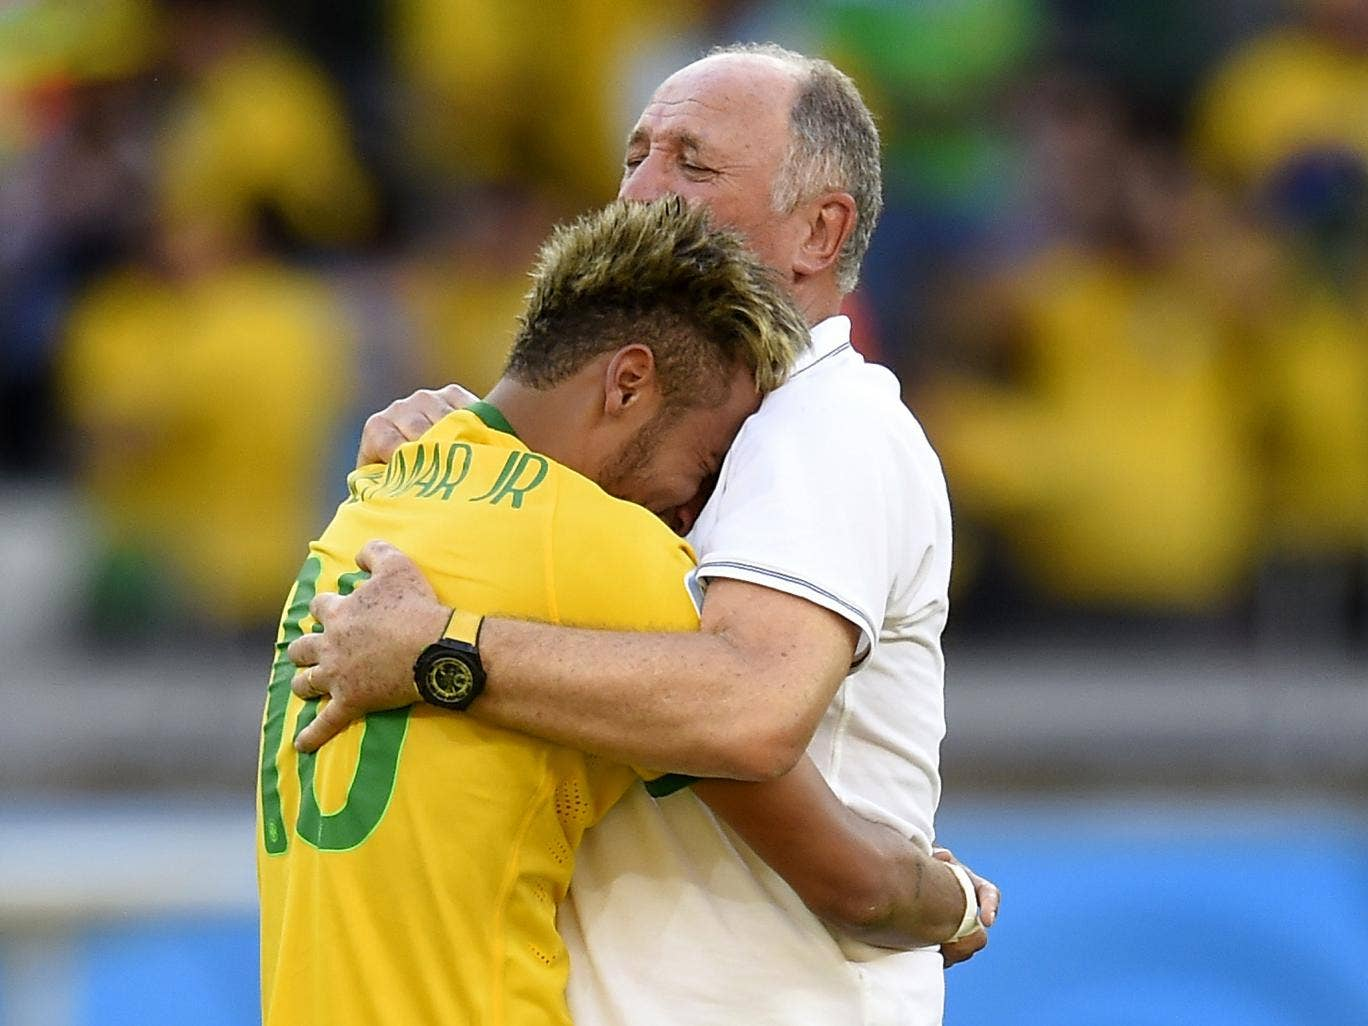 Neymar and Scolari embrace after Brazil went through on penalties against Chile